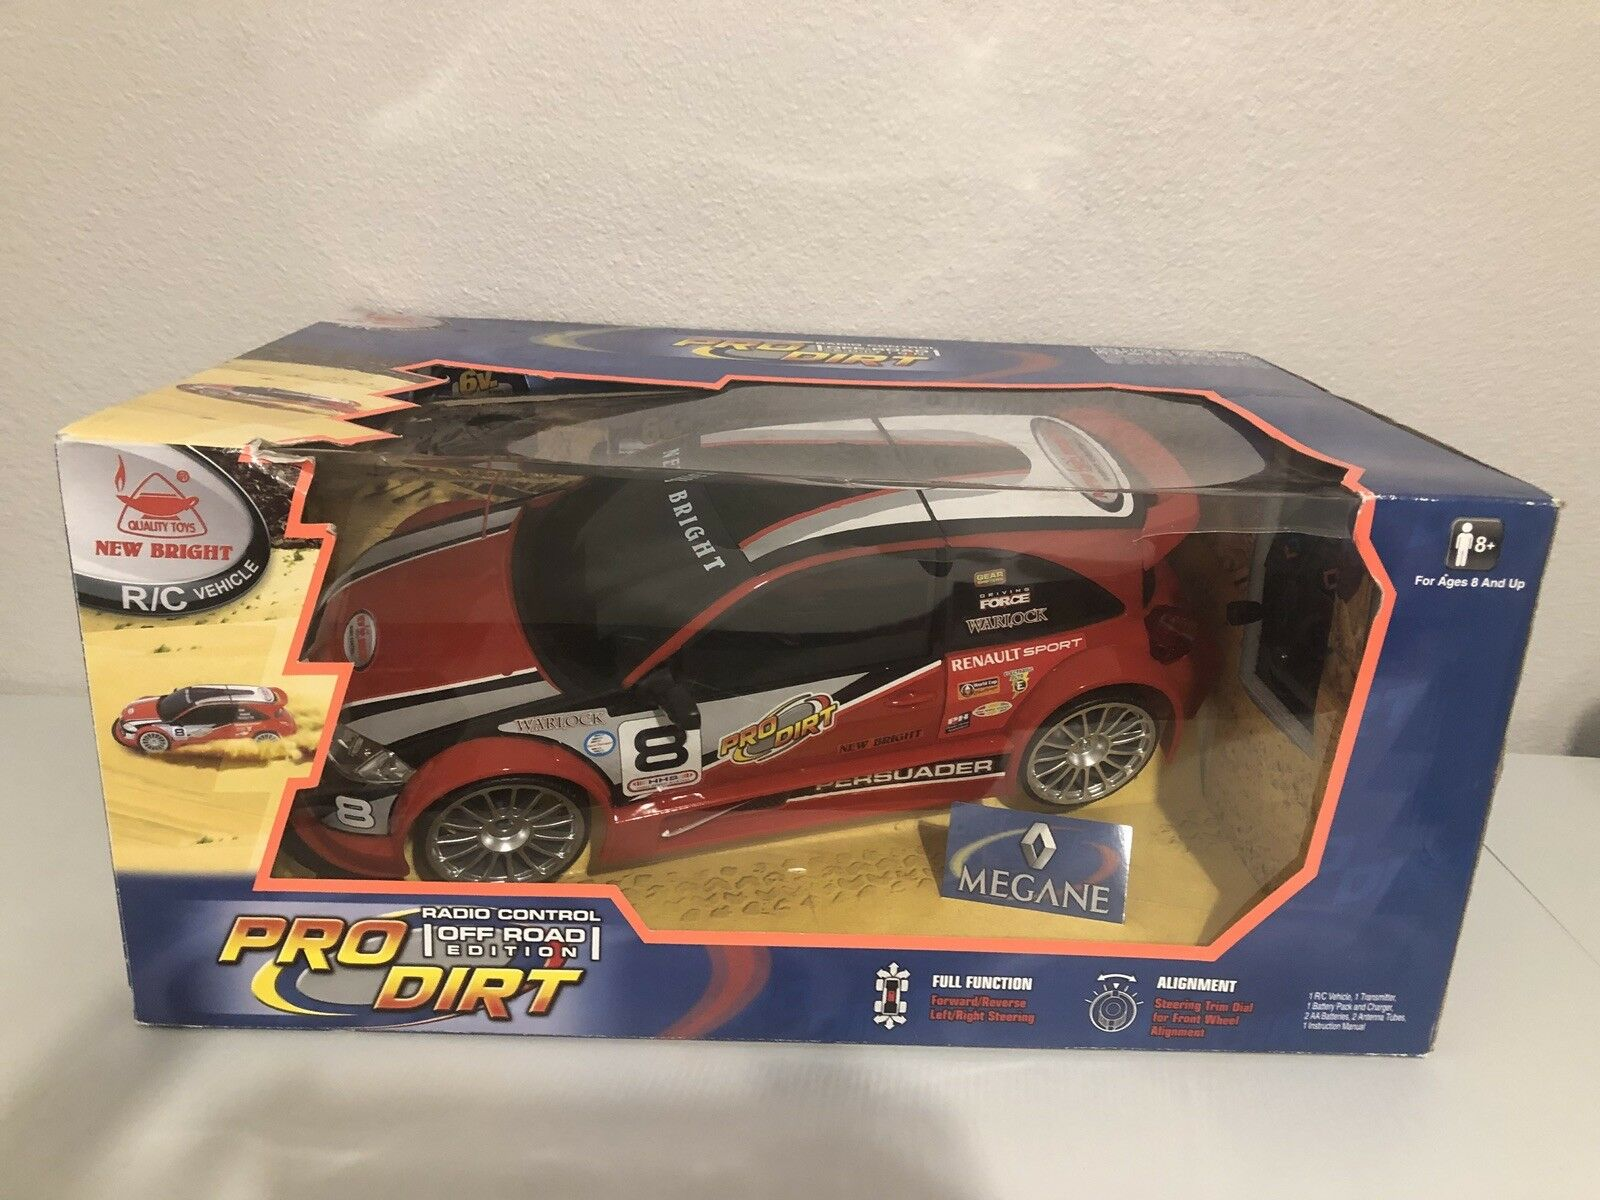 Nuovo Bright 1:10 Radio Control Persuader Megane Off Road Driving Toy - NEW